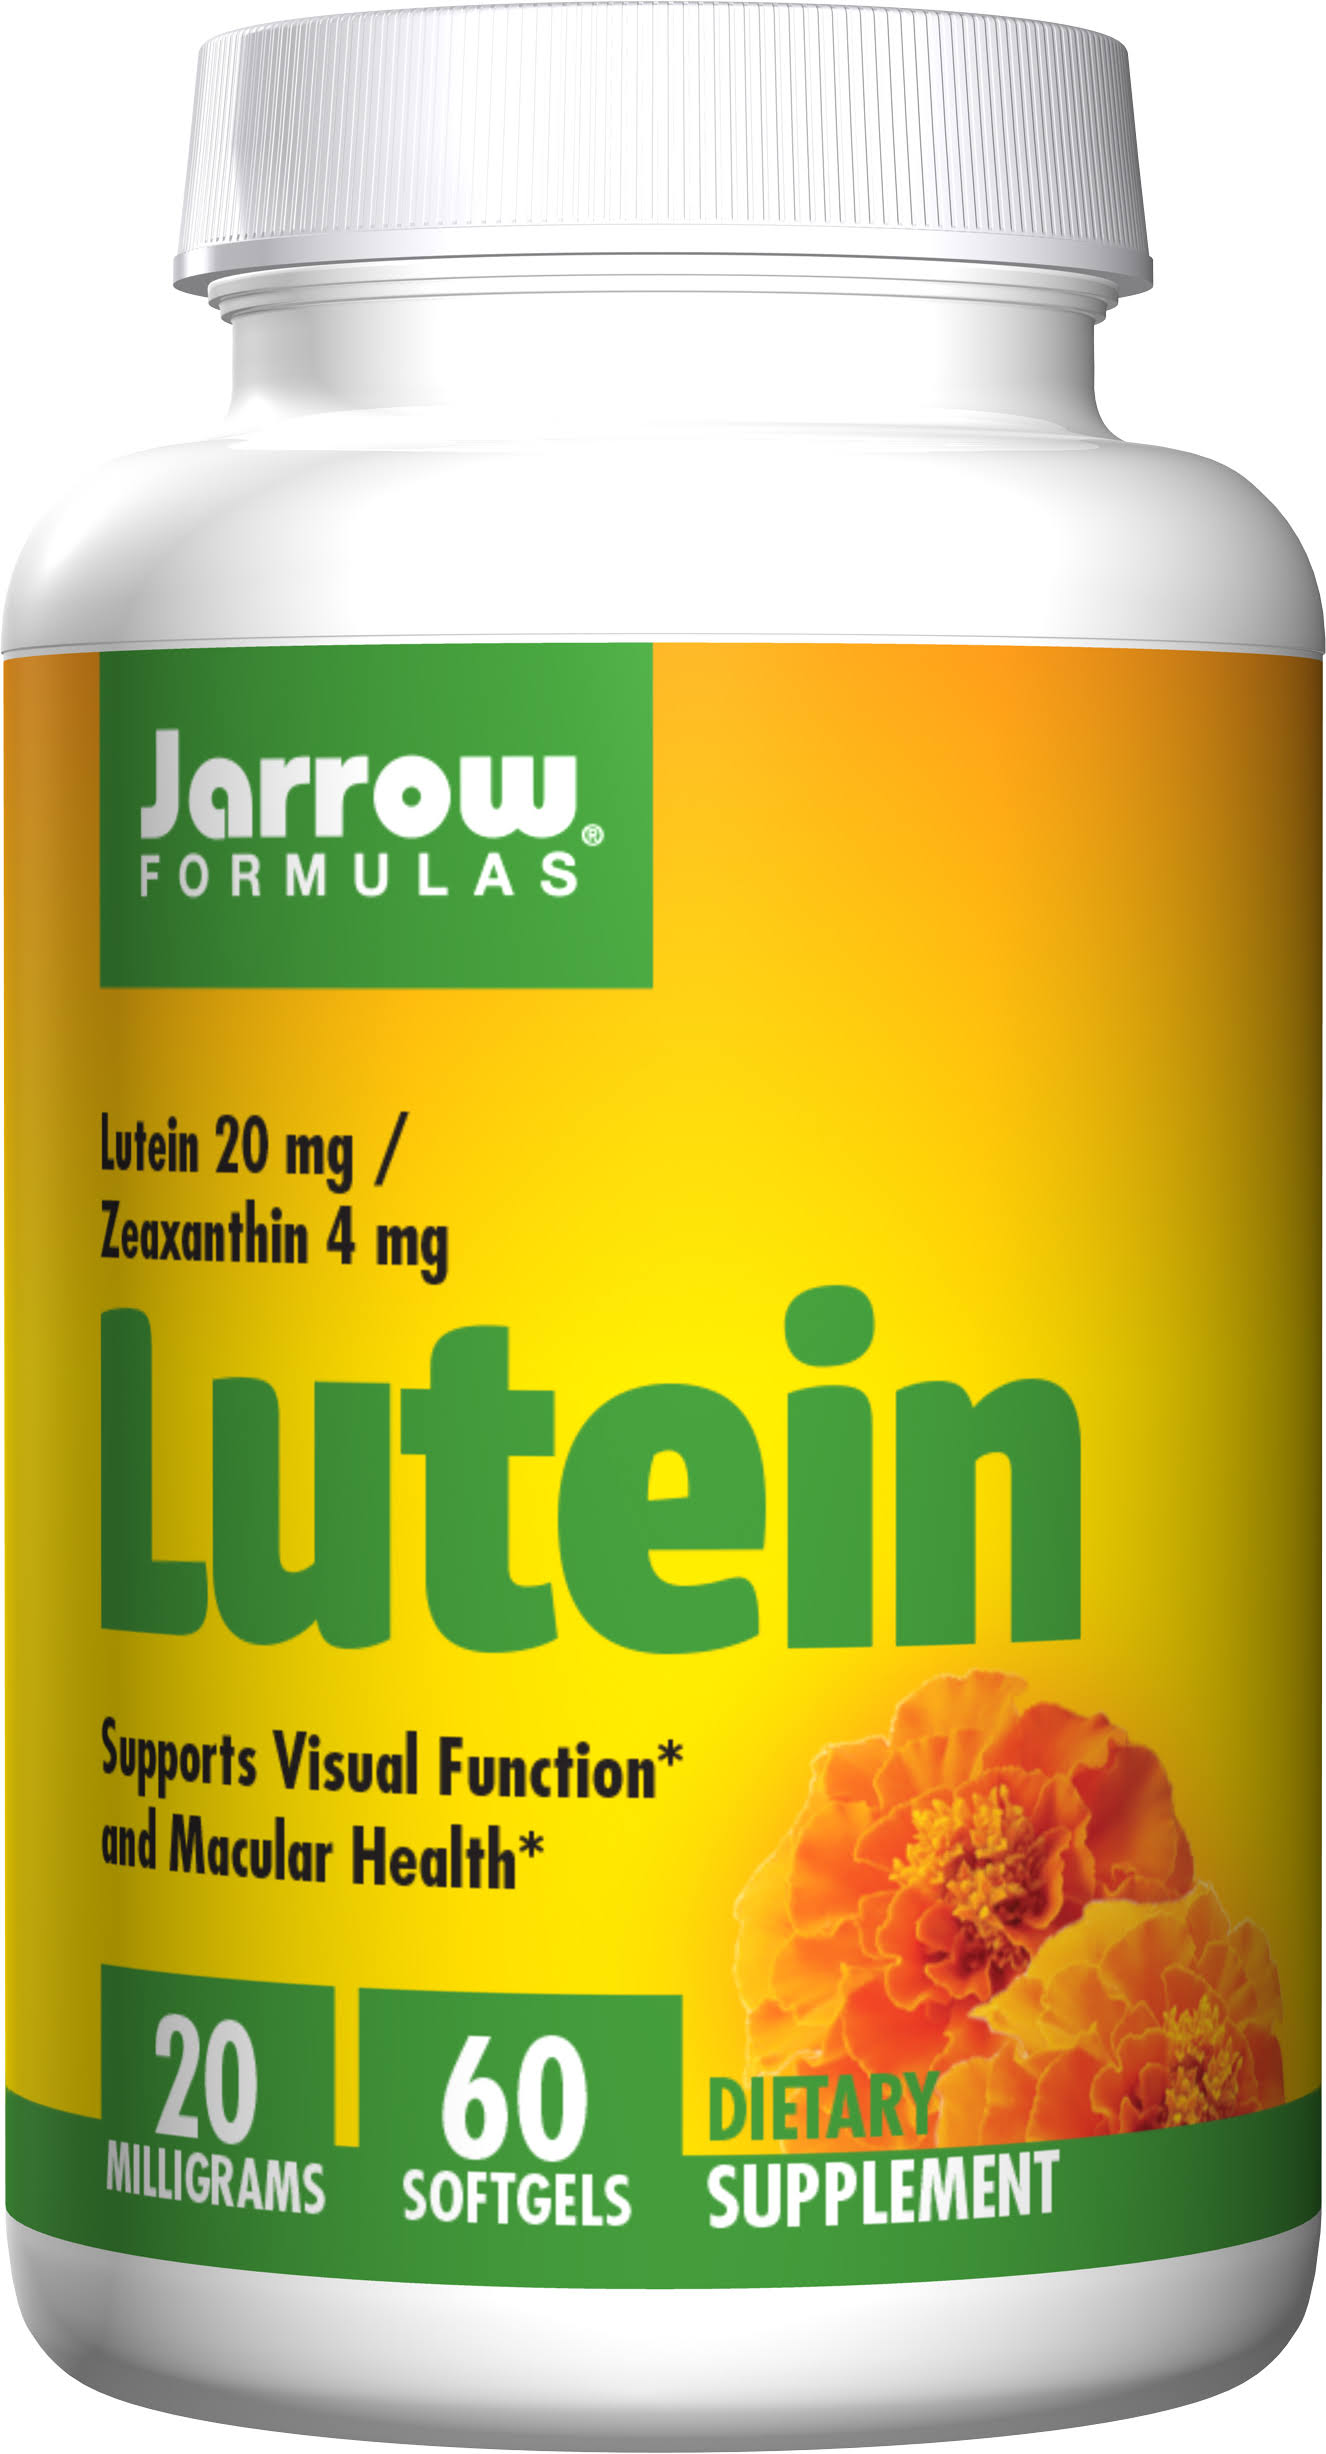 Jarrow Formulas Lutein Supplement - 60 Softgels